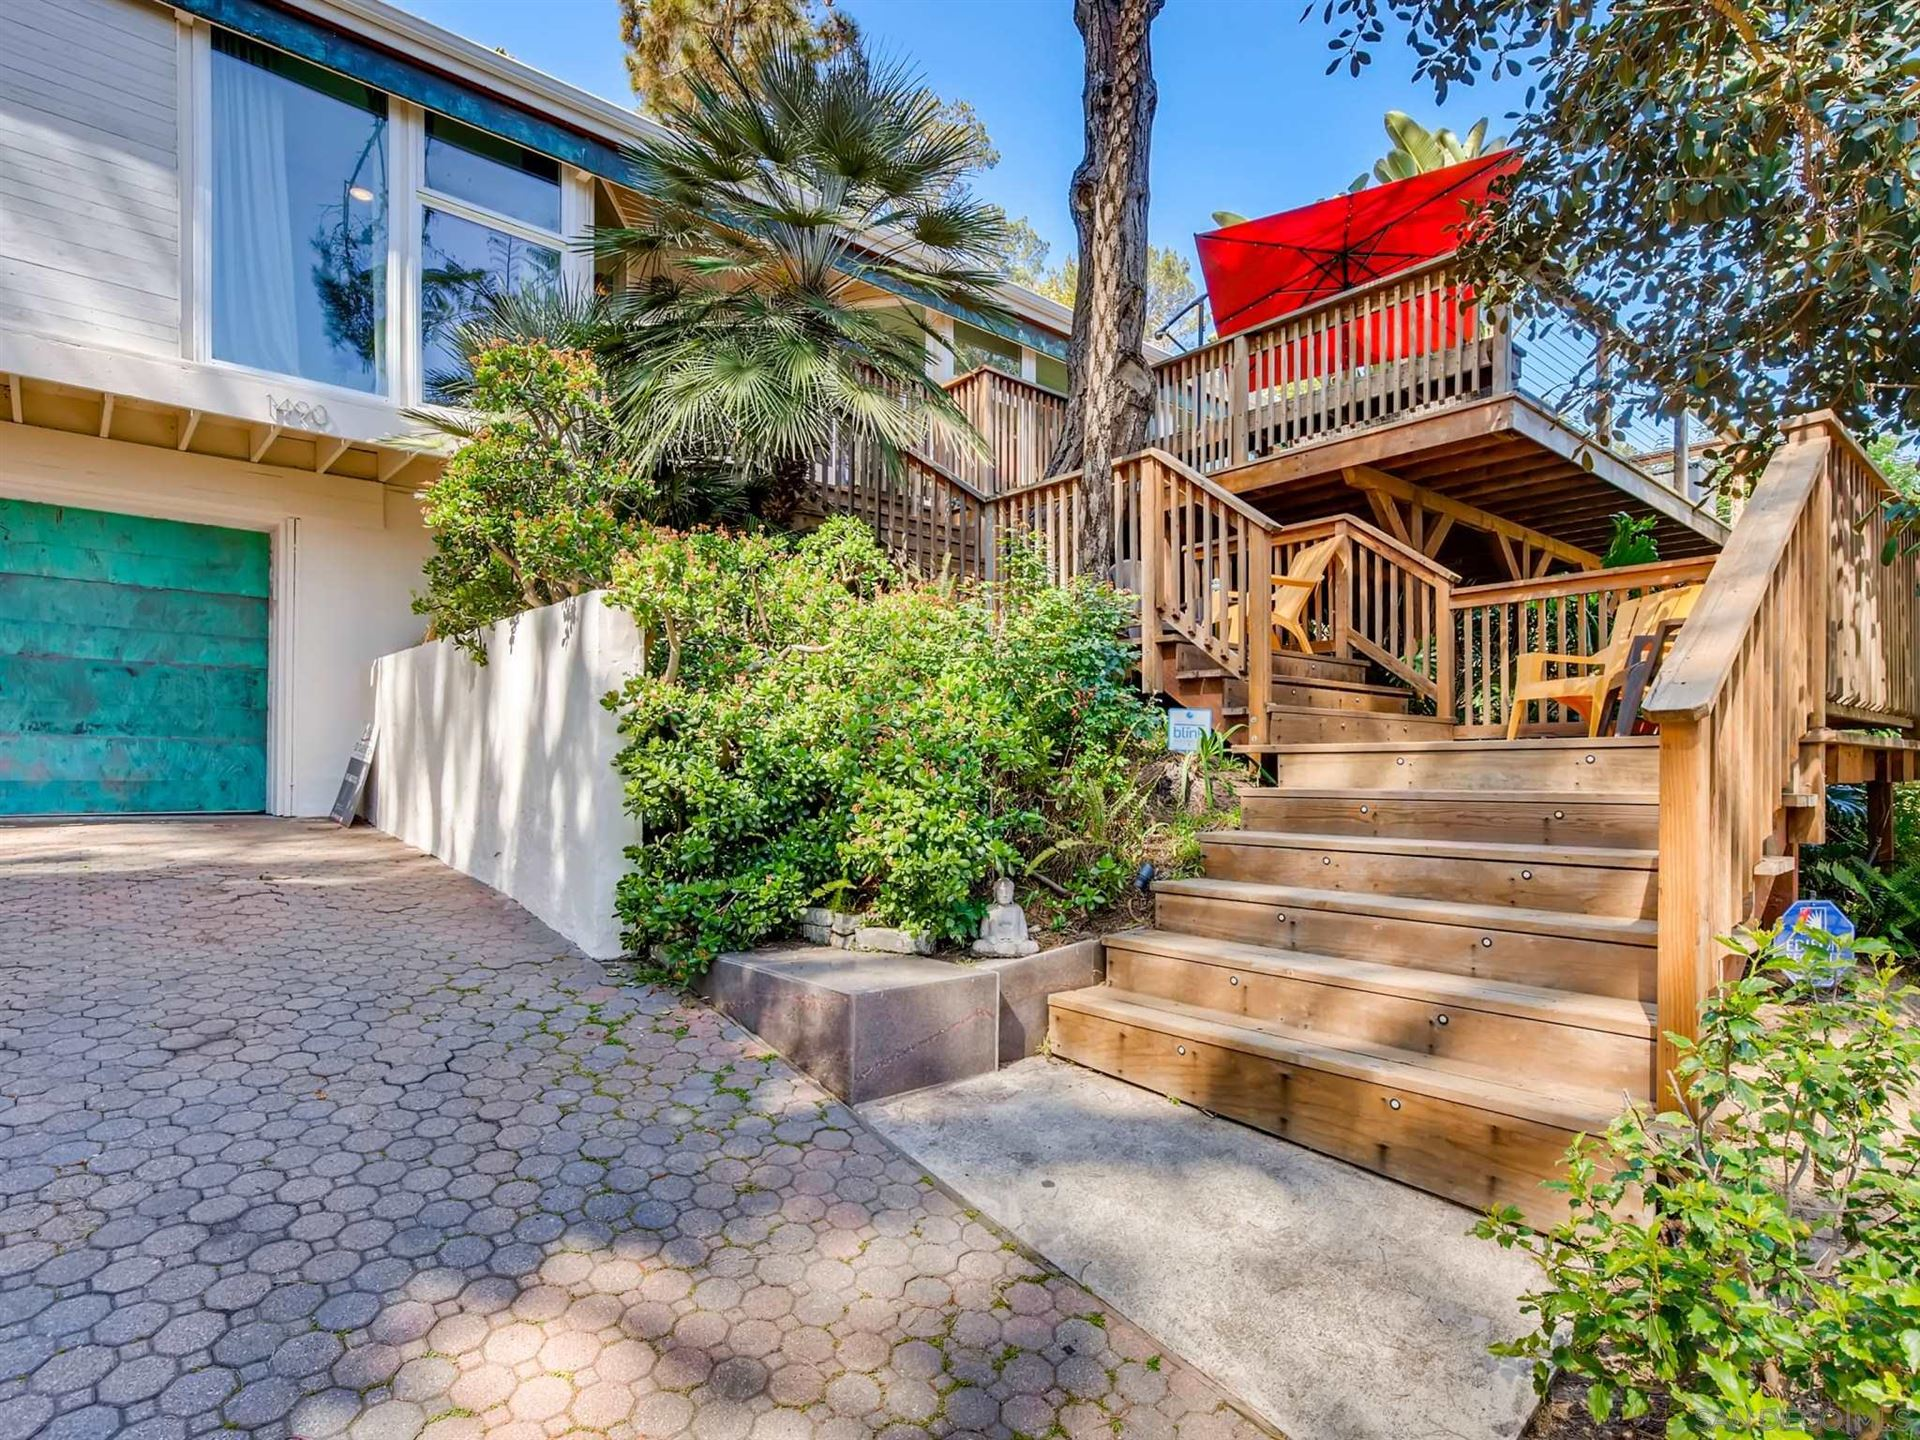 Photo of 1490 Oribia Street, Del Mar, CA 92014 (MLS # 210008523)